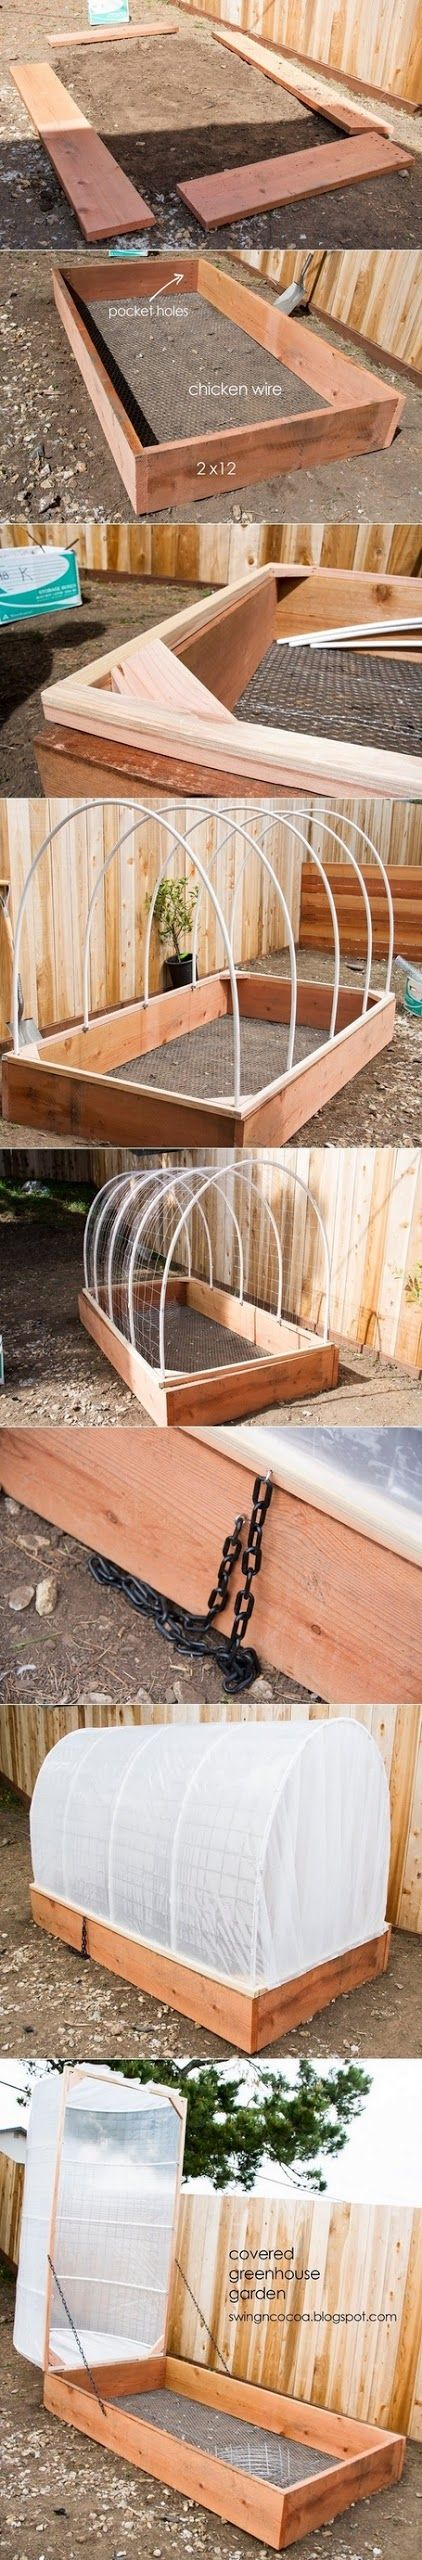 Build Small Greenhouse How To Building A Small Greenhouse Atop A Raised Bed I Would Not Use